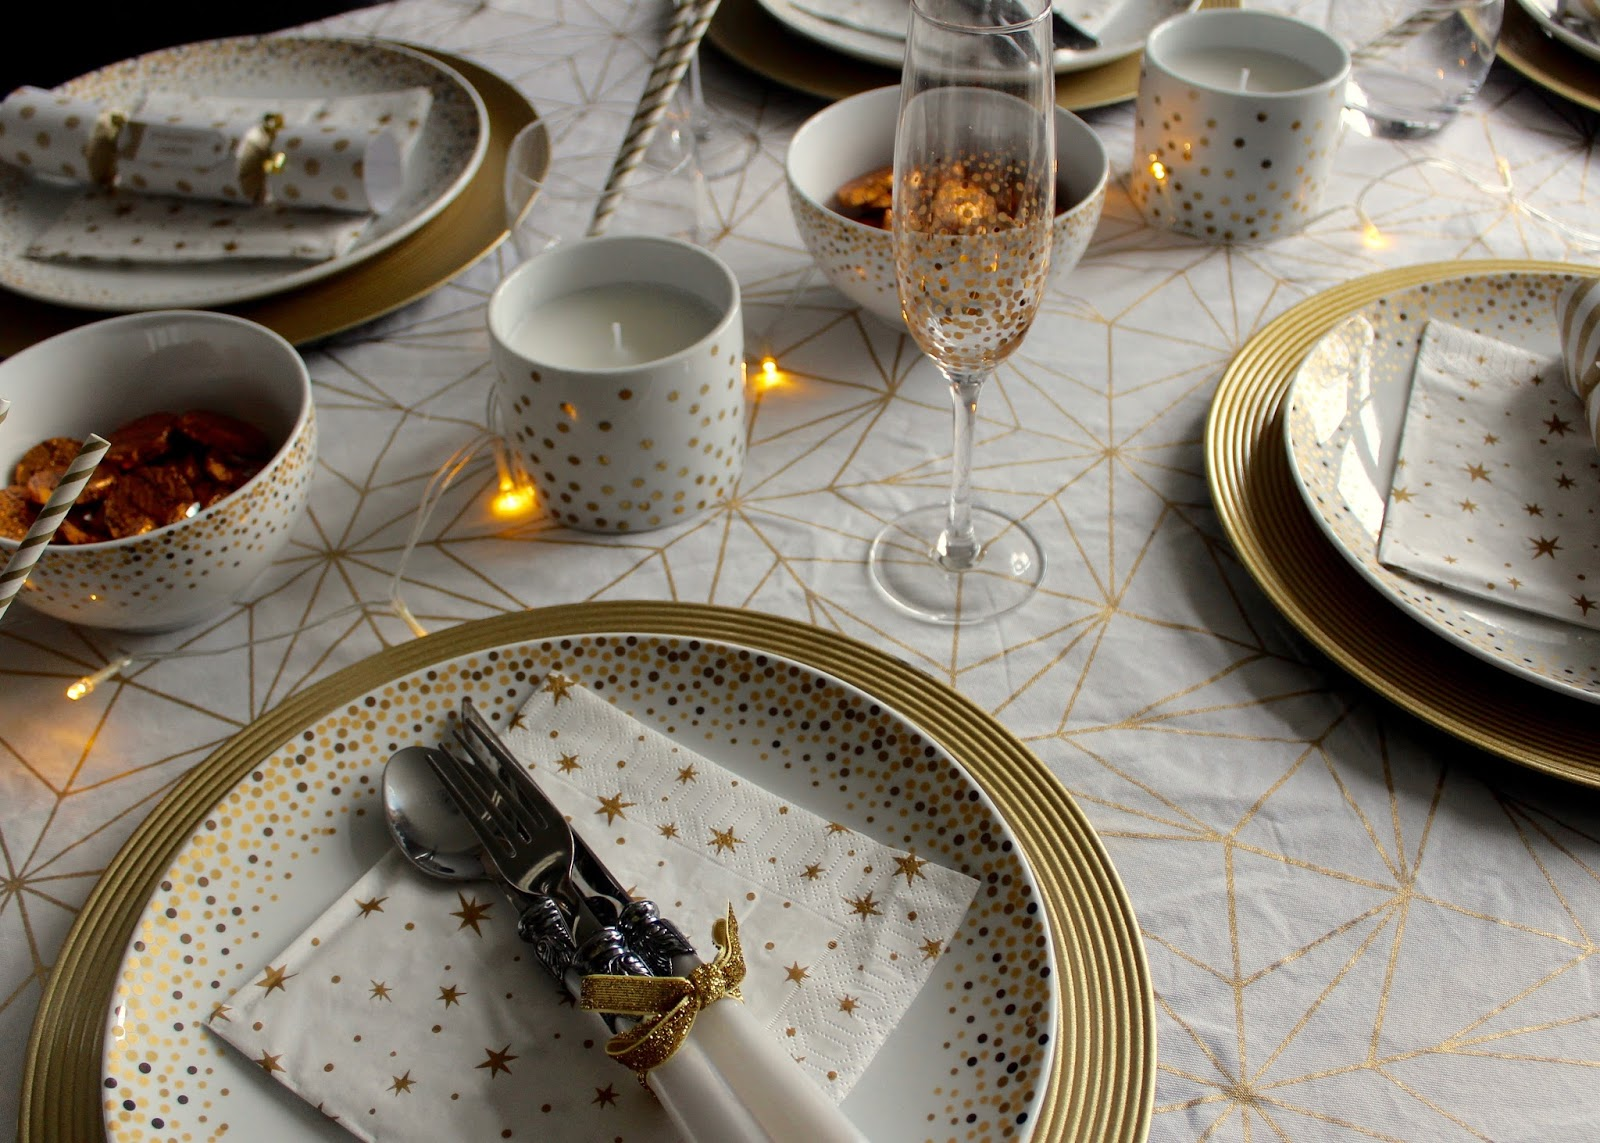 Sparkle dinnerware - Wilko & Home for Christmas - decorations tableware and home comforts ...